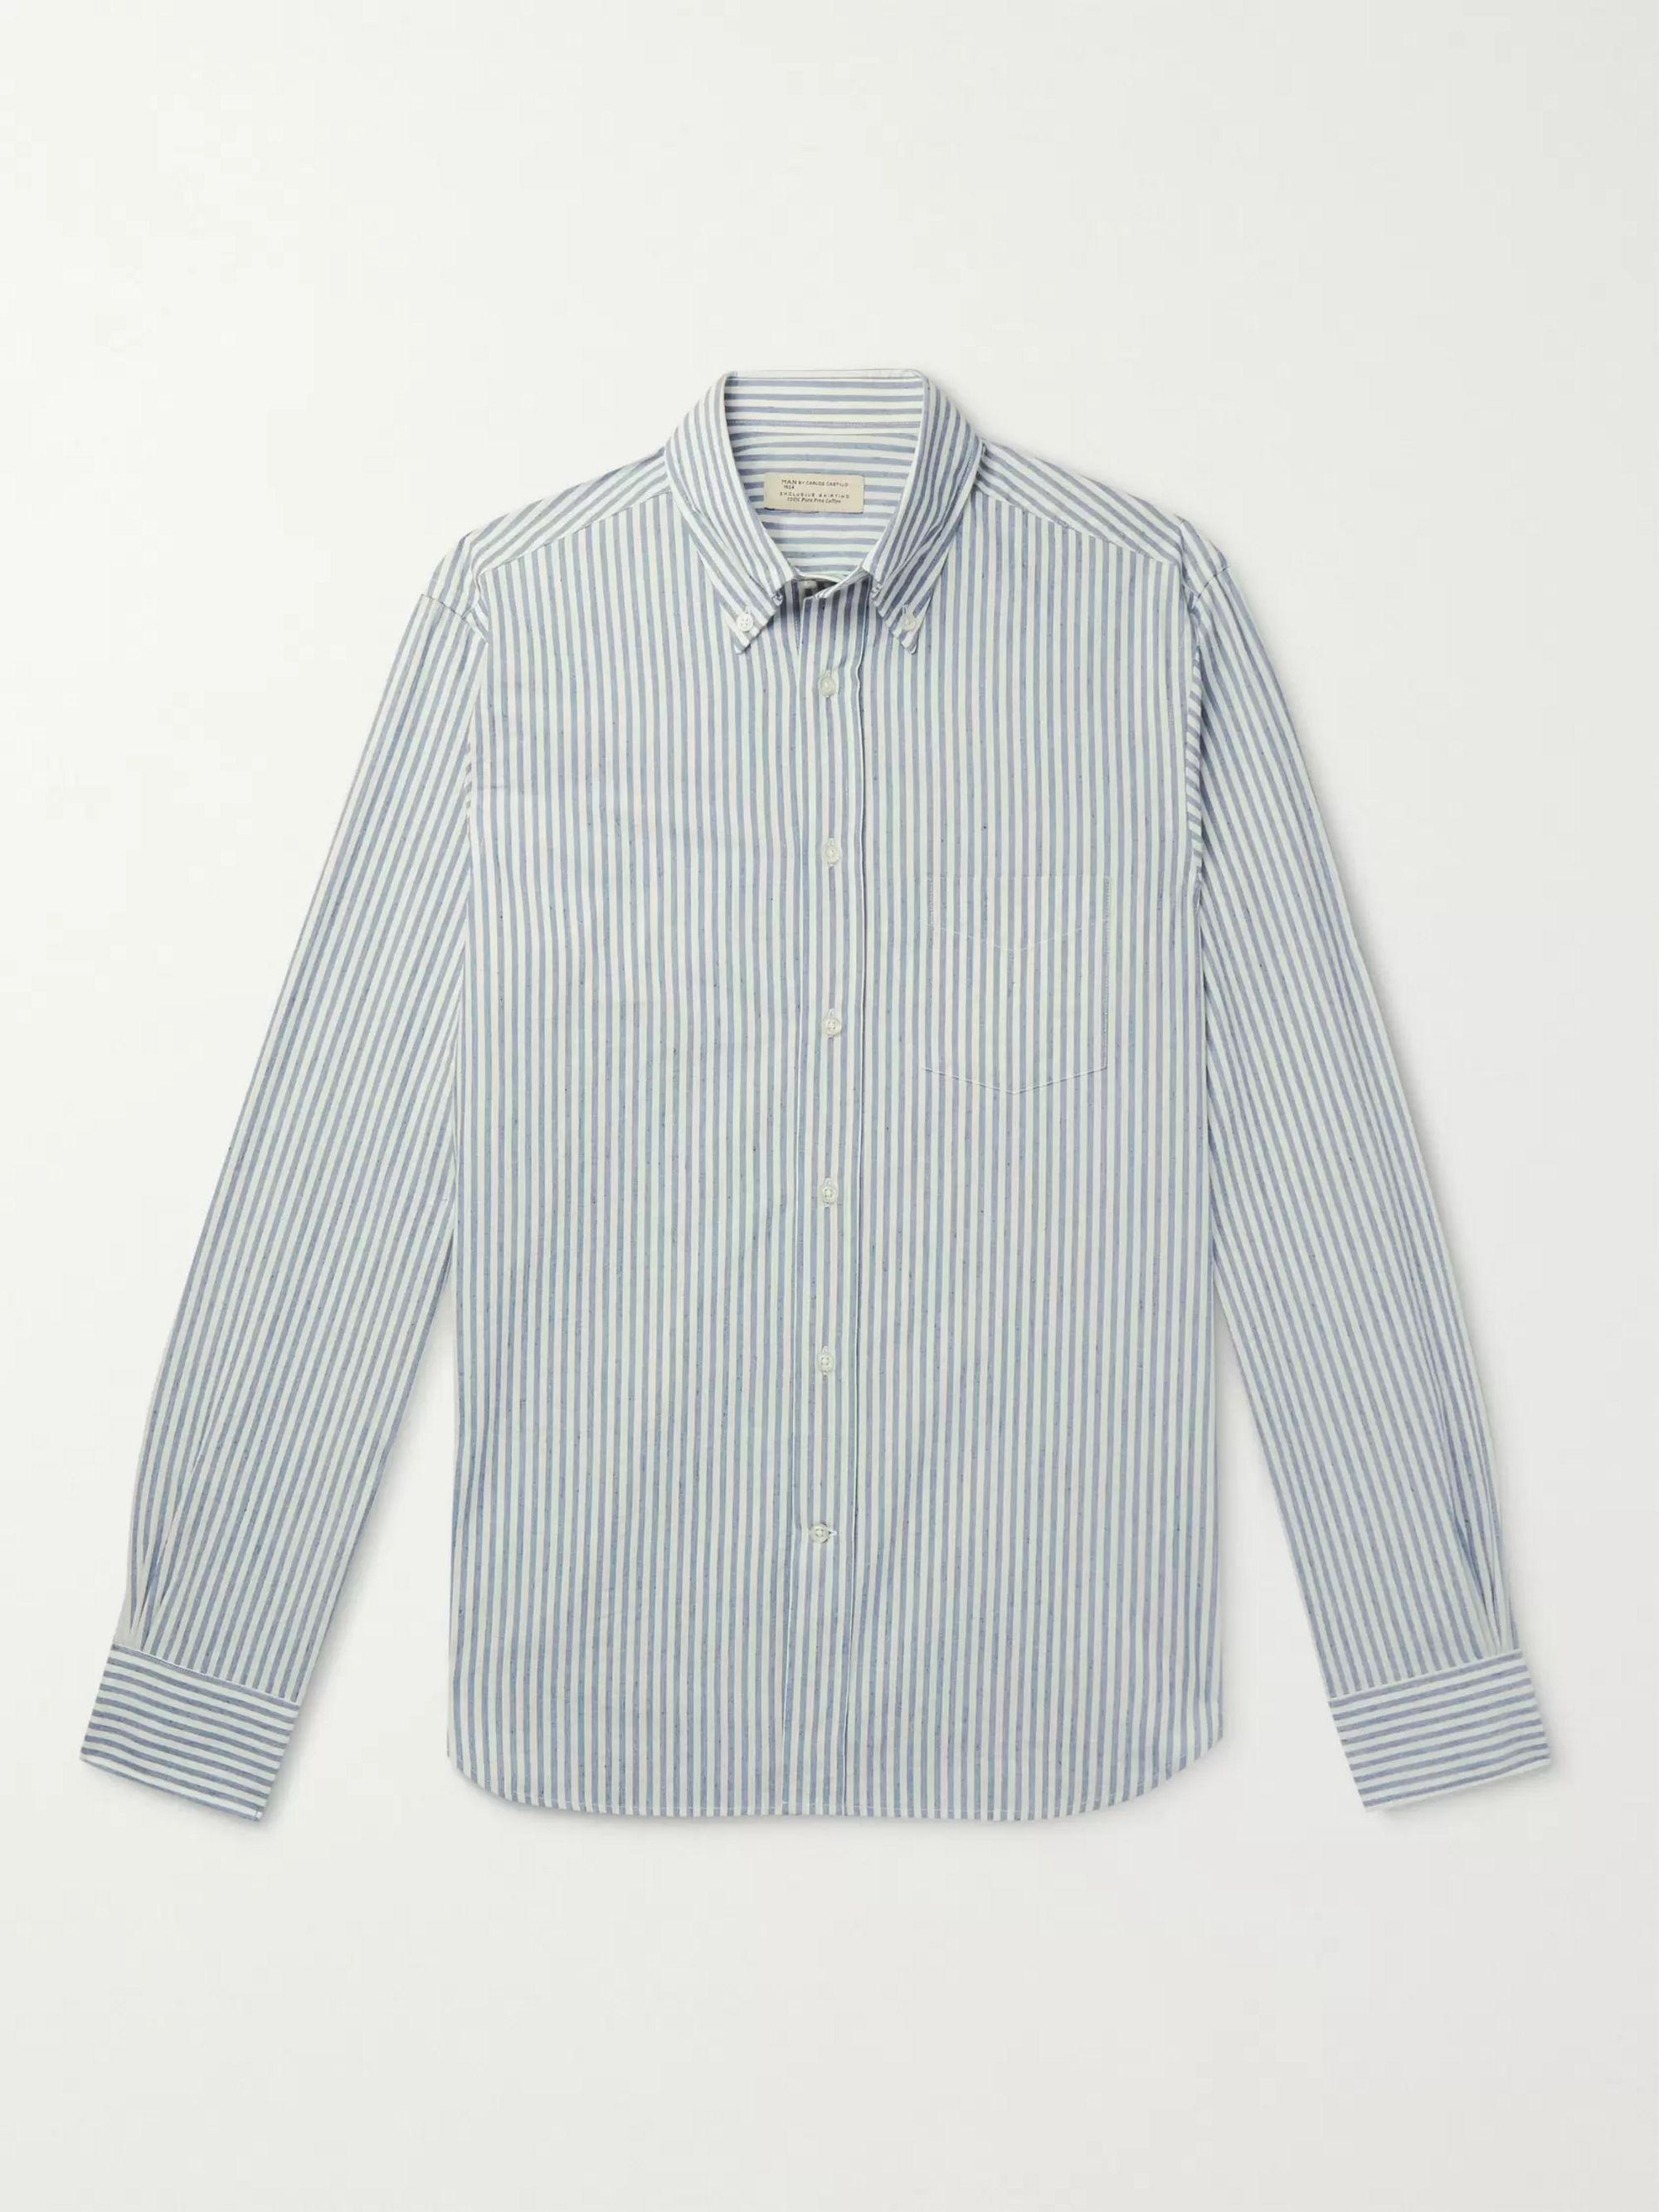 MAN 1924 Slim-Fit Button-Down Collar Striped Cotton Shirt